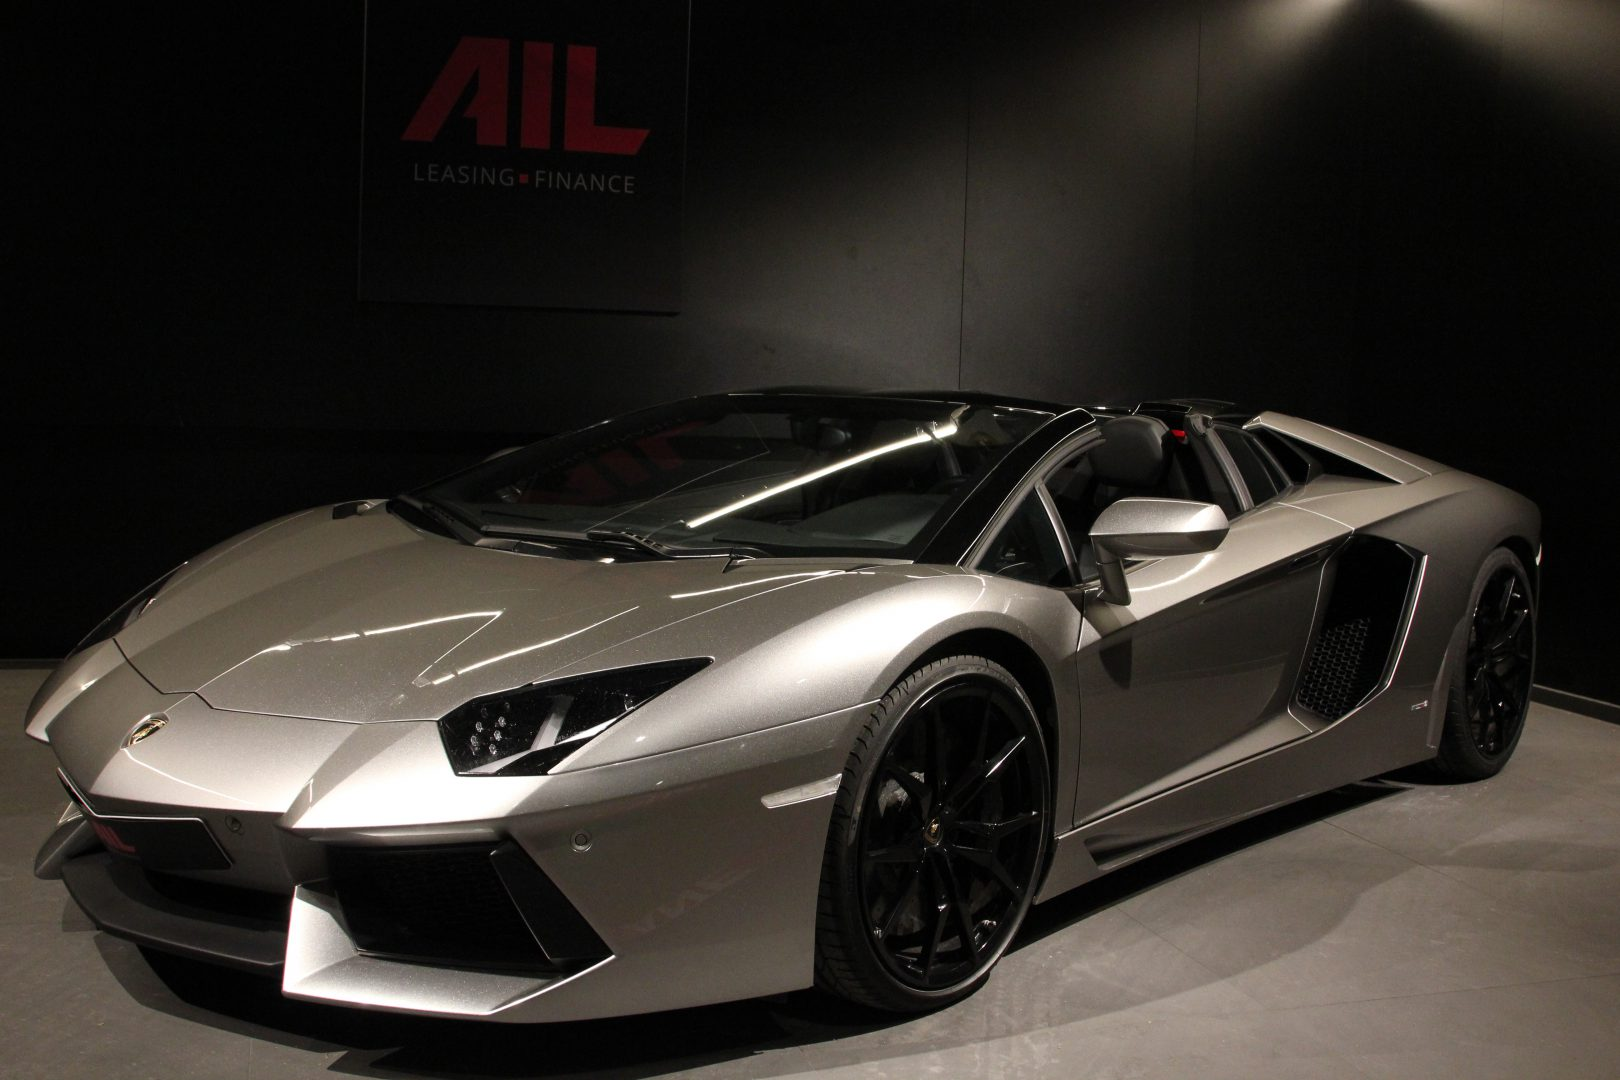 AIL Lamborghini Aventador LP700-4 Roadster LIFT  Dione Forged 15